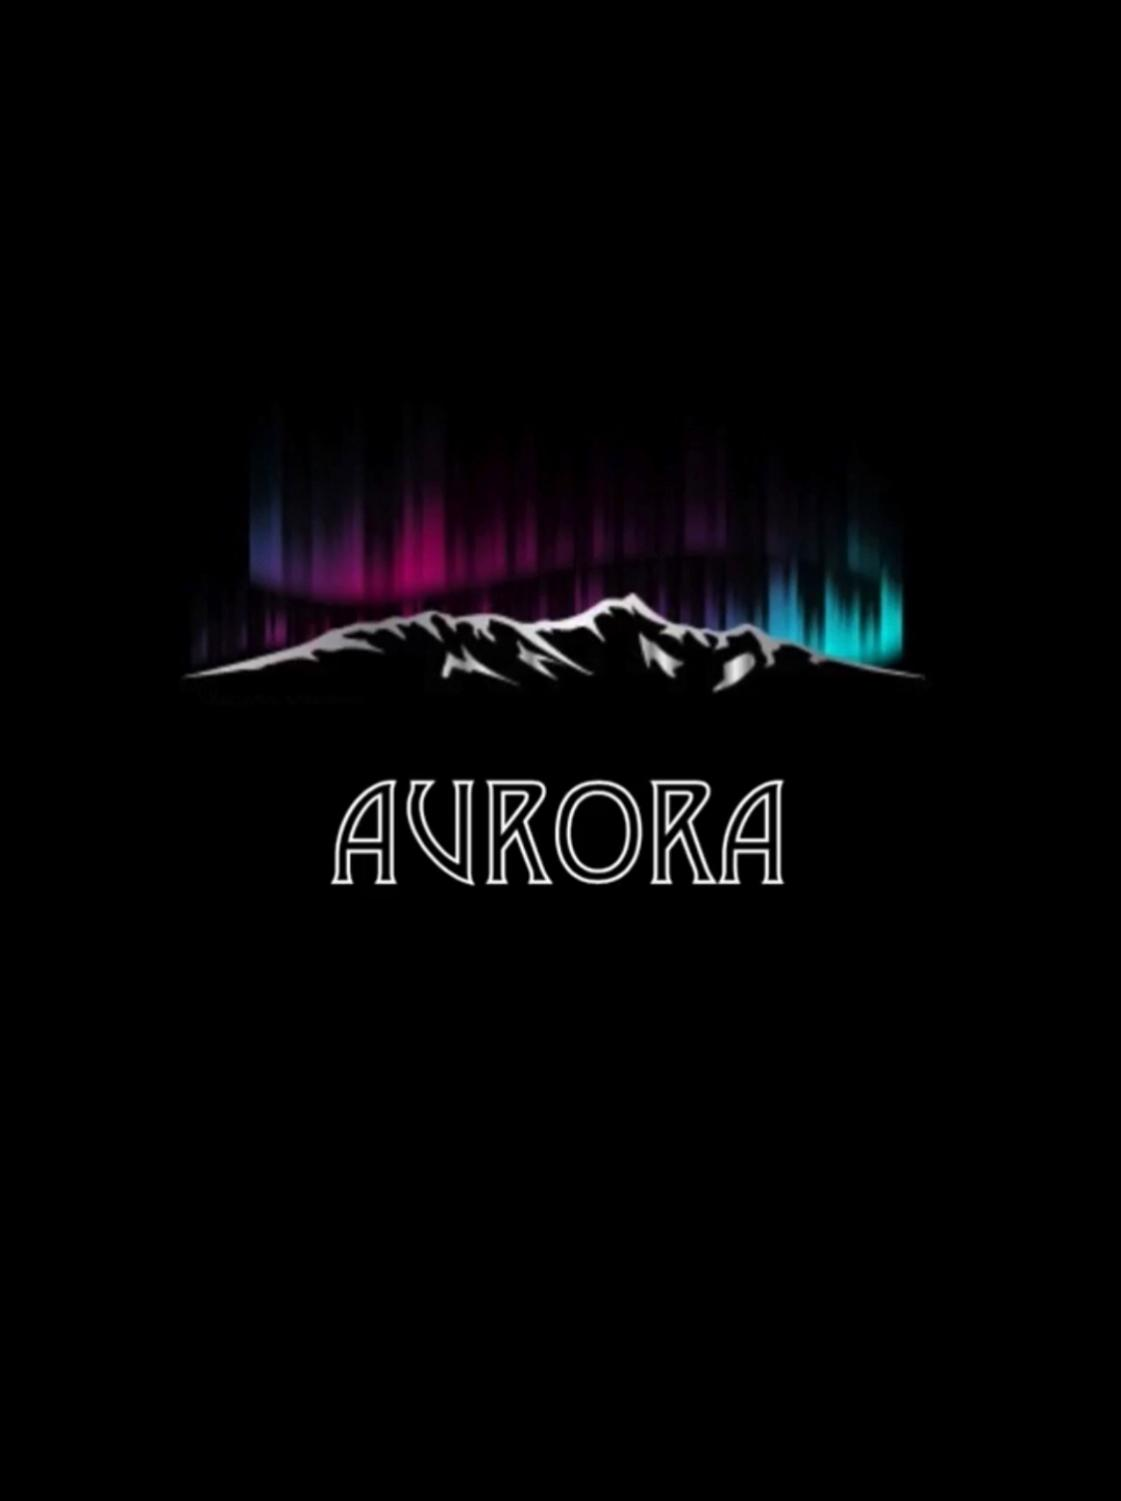 This year, South Forsyth High School's theme for prom is Aurora. The Prom Committee has been planning and brainstorming since September to make prom 2018 enjoyable for all who attend. https://www.youtube.com/watch?v=VFXTTacKmG4